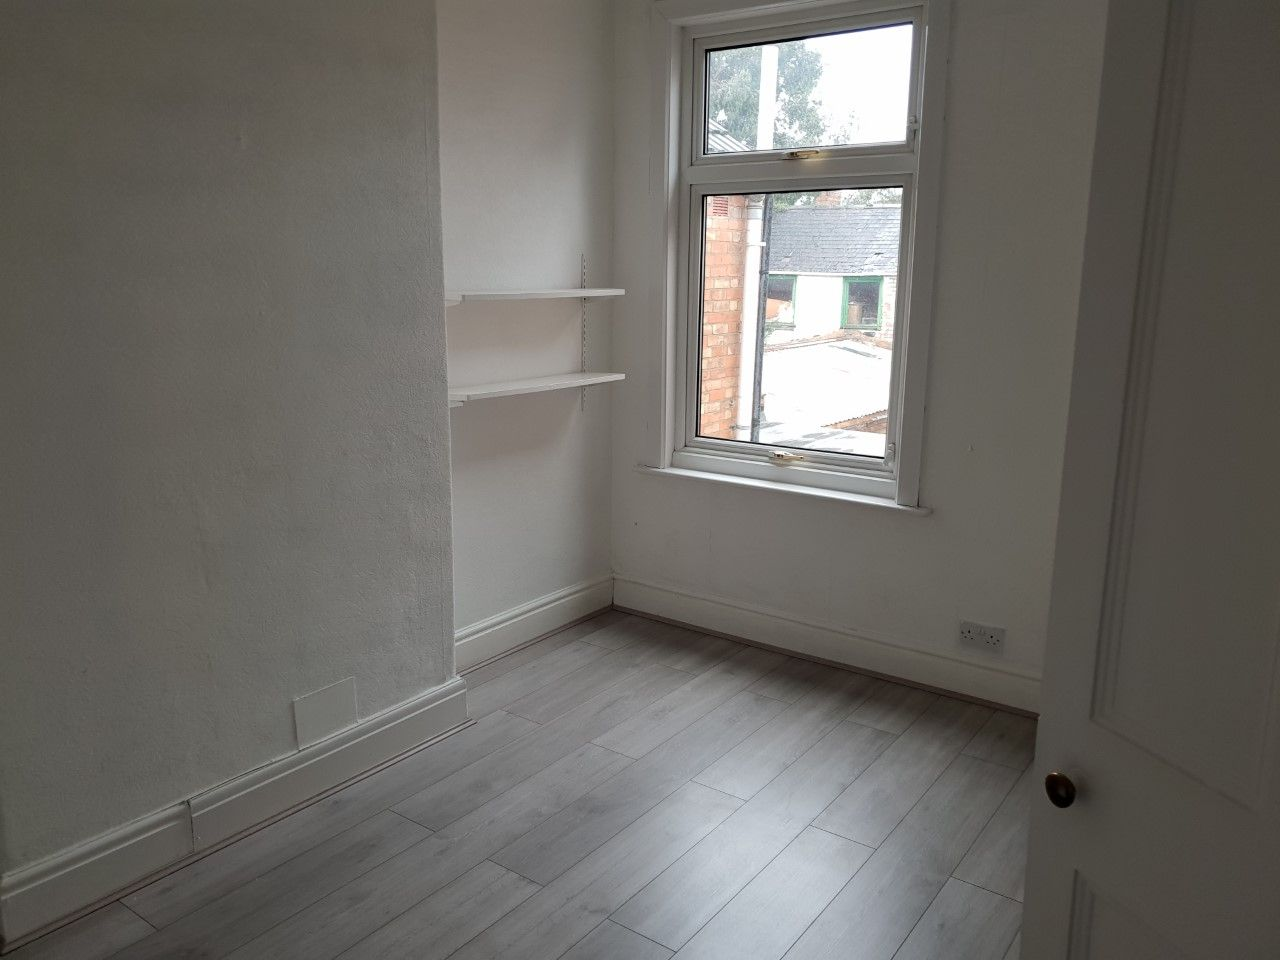 3 bedroom mid terraced house To Let in Leicester - Photograph 15.